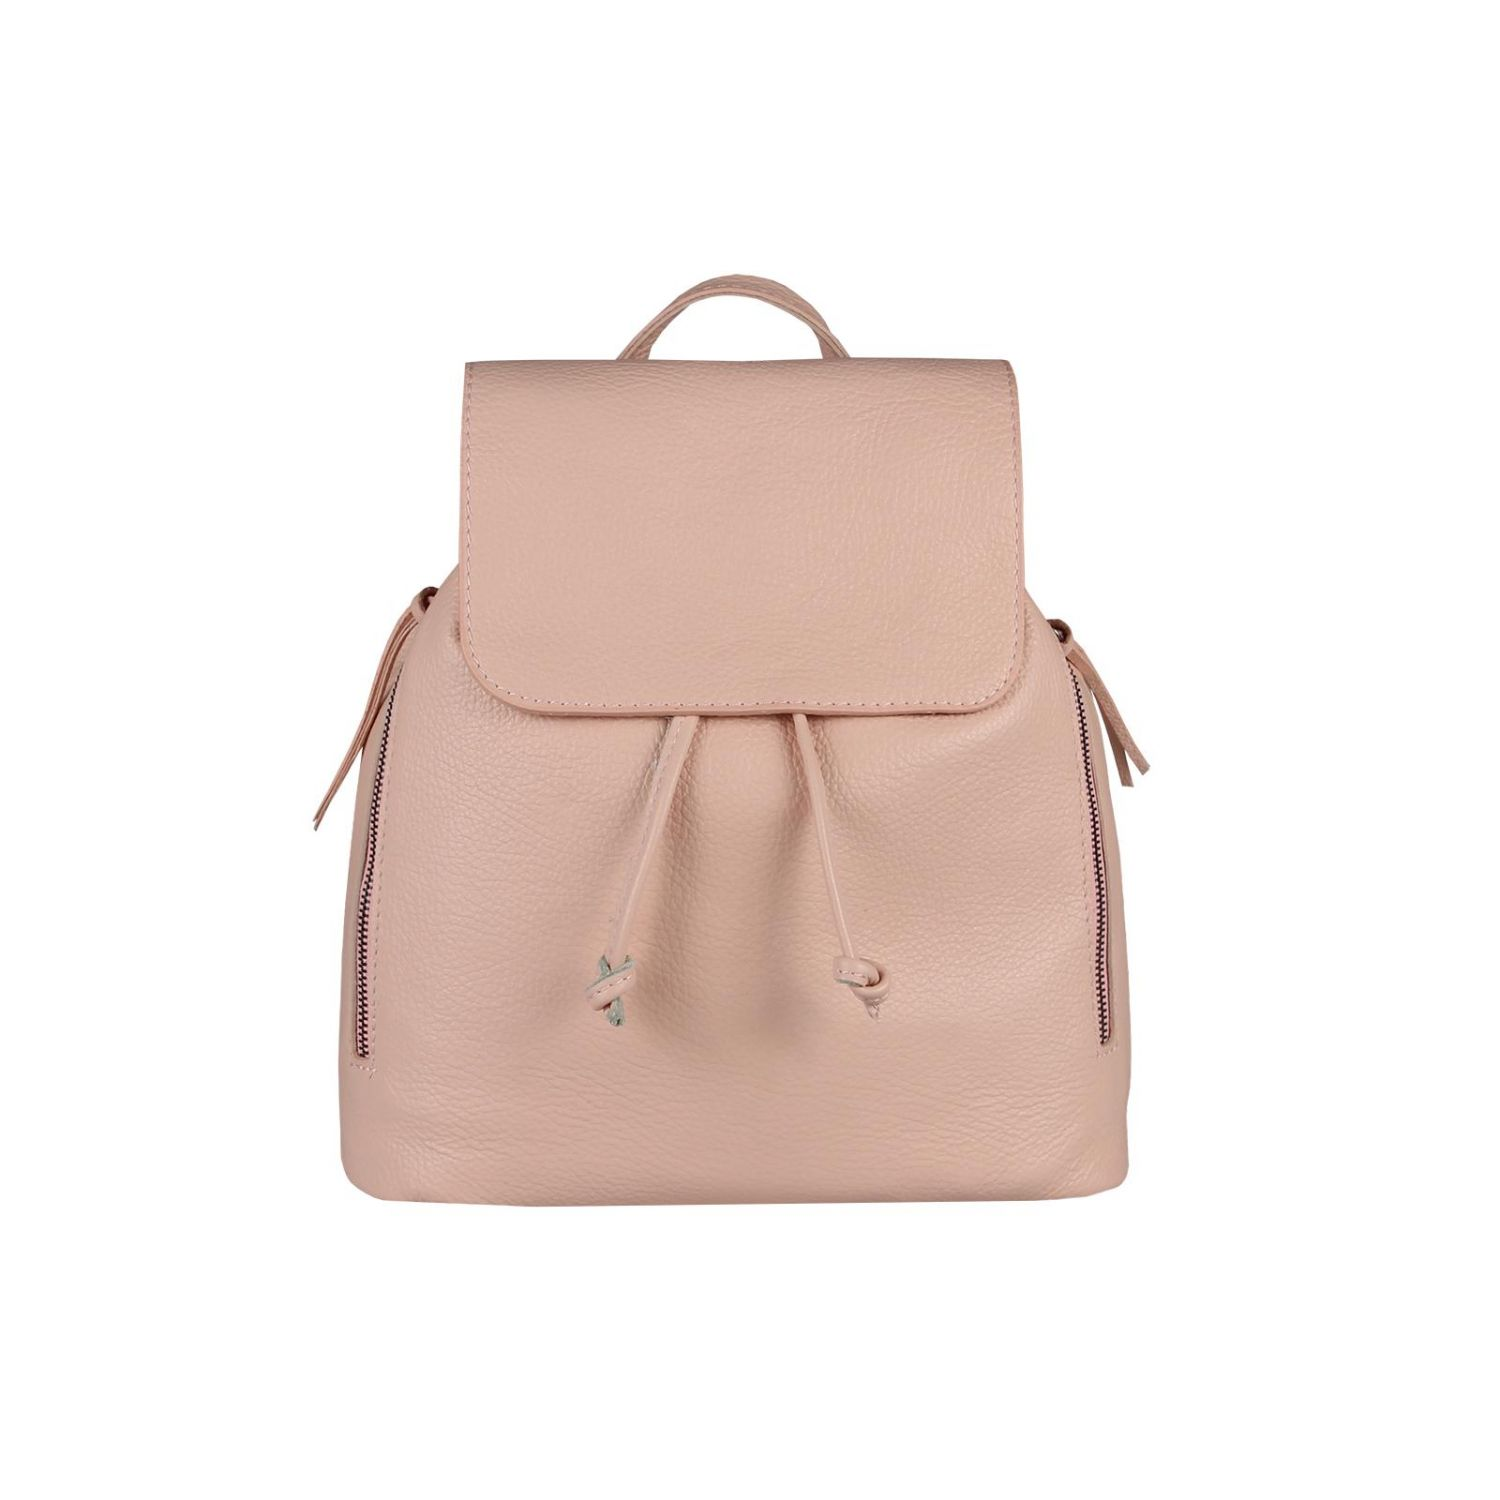 5eded45174 OBC made in Italy ladies real leather city backpacks leather backpack bag  shoulder bag leather bag city bag cowhide leather handbag of daypack  backpack